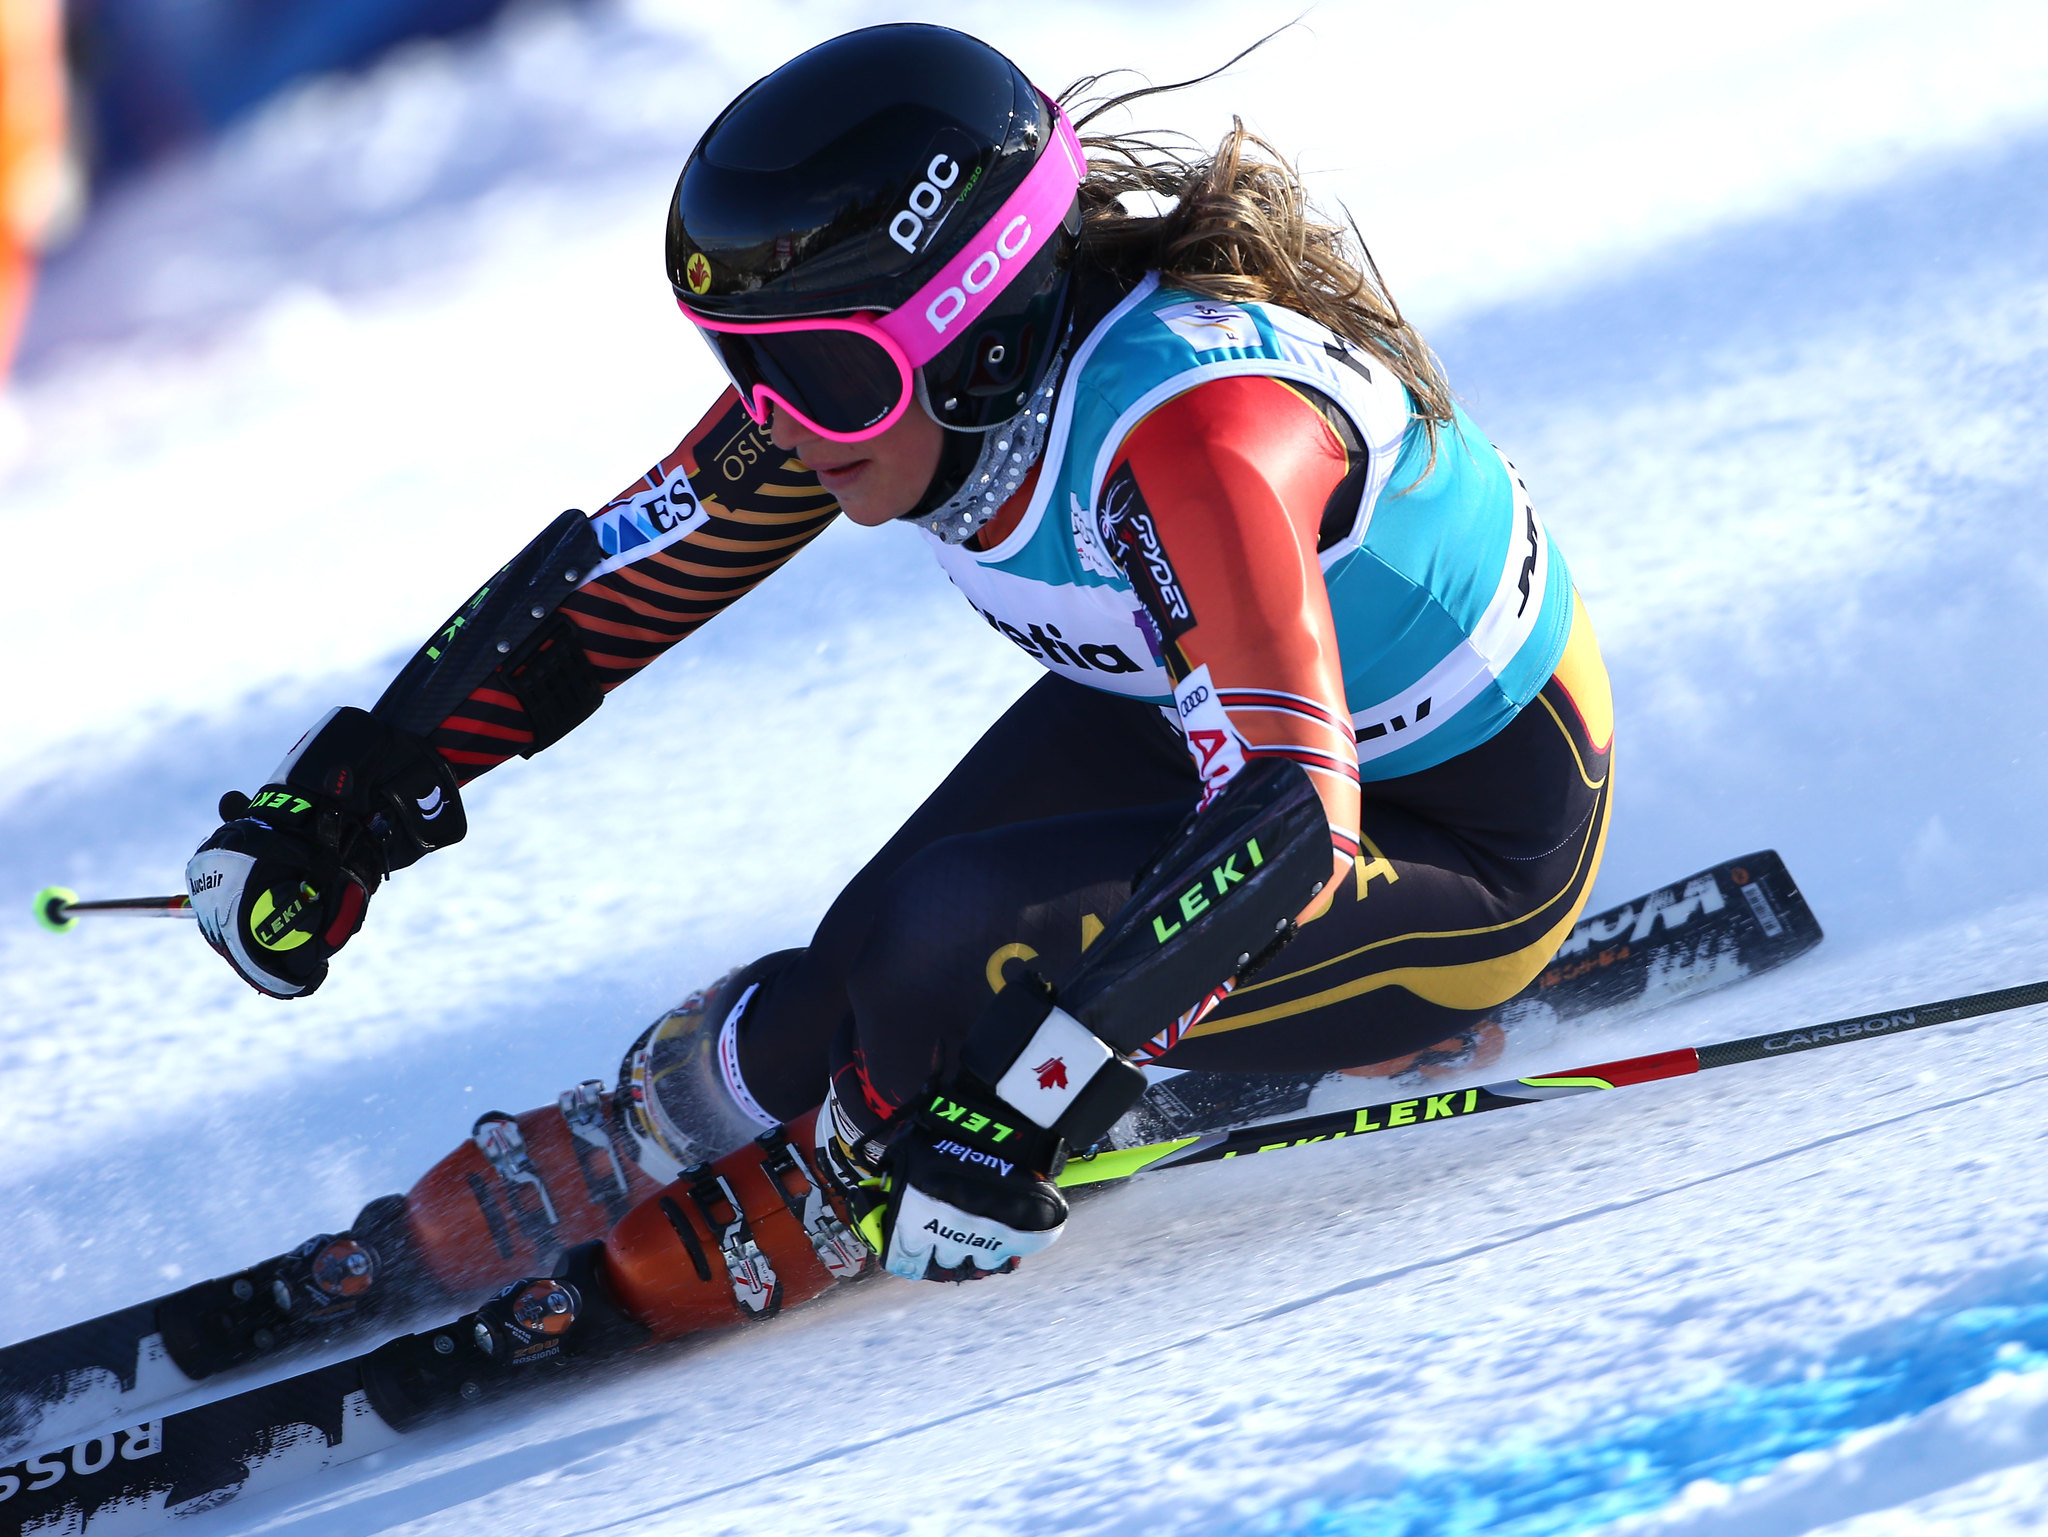 Préfontaine in action in the giant slalom in Beaver Creek, U.S.